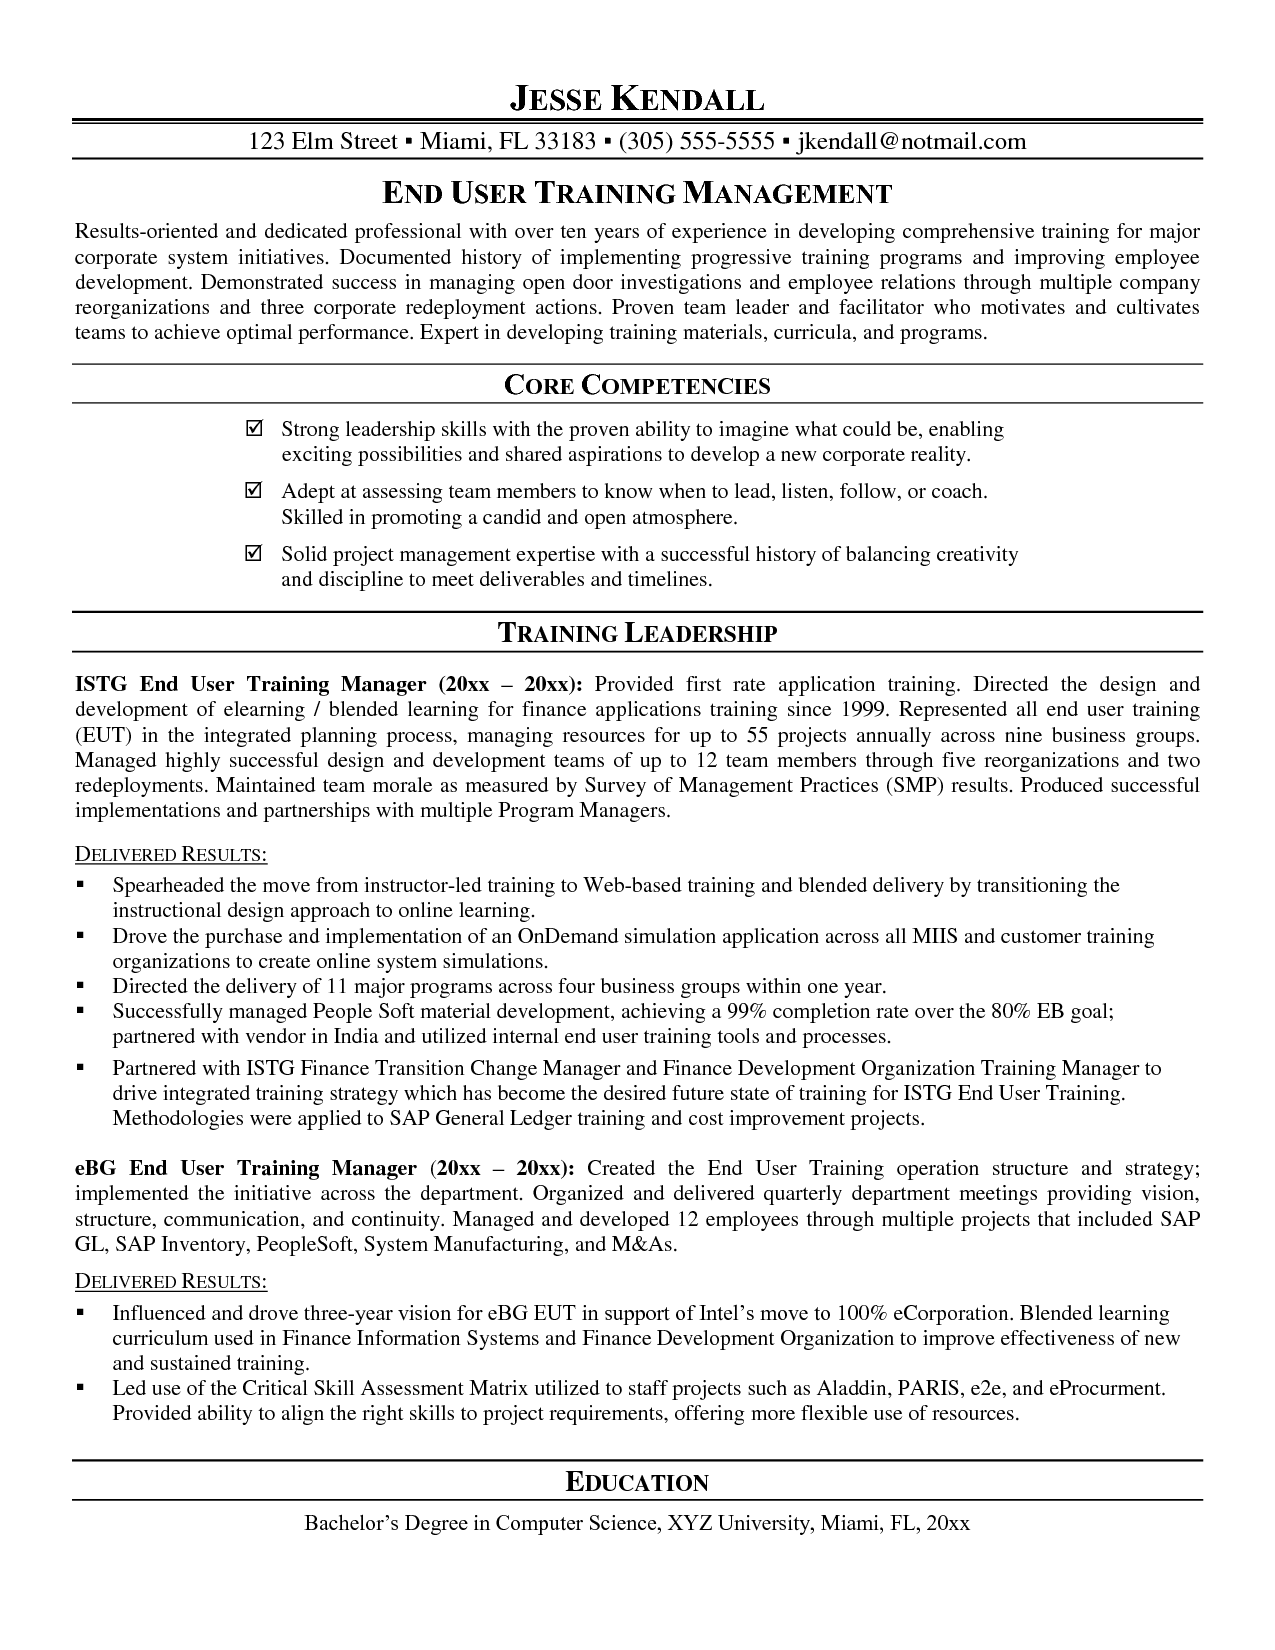 Training Manager Resume o